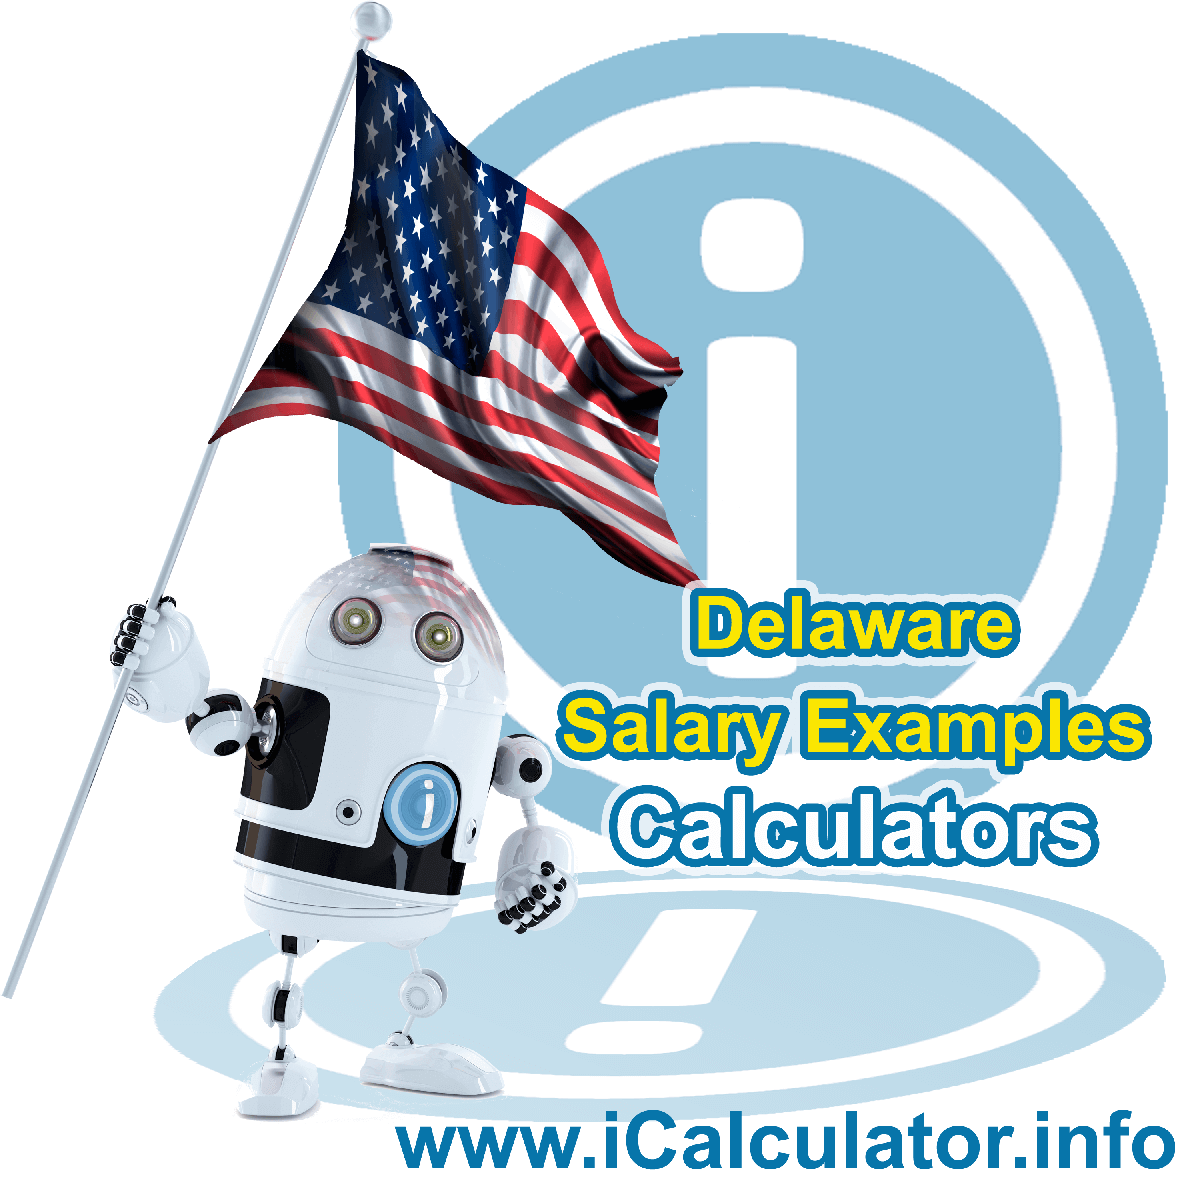 Delaware Salary Example for $20.00 in 2020 | iCalculator | $20.00 salary example for employee and employer paying Delaware State tincome taxes. Detailed salary after tax calculation including Delaware State Tax, Federal State Tax, Medicare Deductions, Social Security, Capital Gains and other income tax and salary deductions complete with supporting Delaware state tax tables